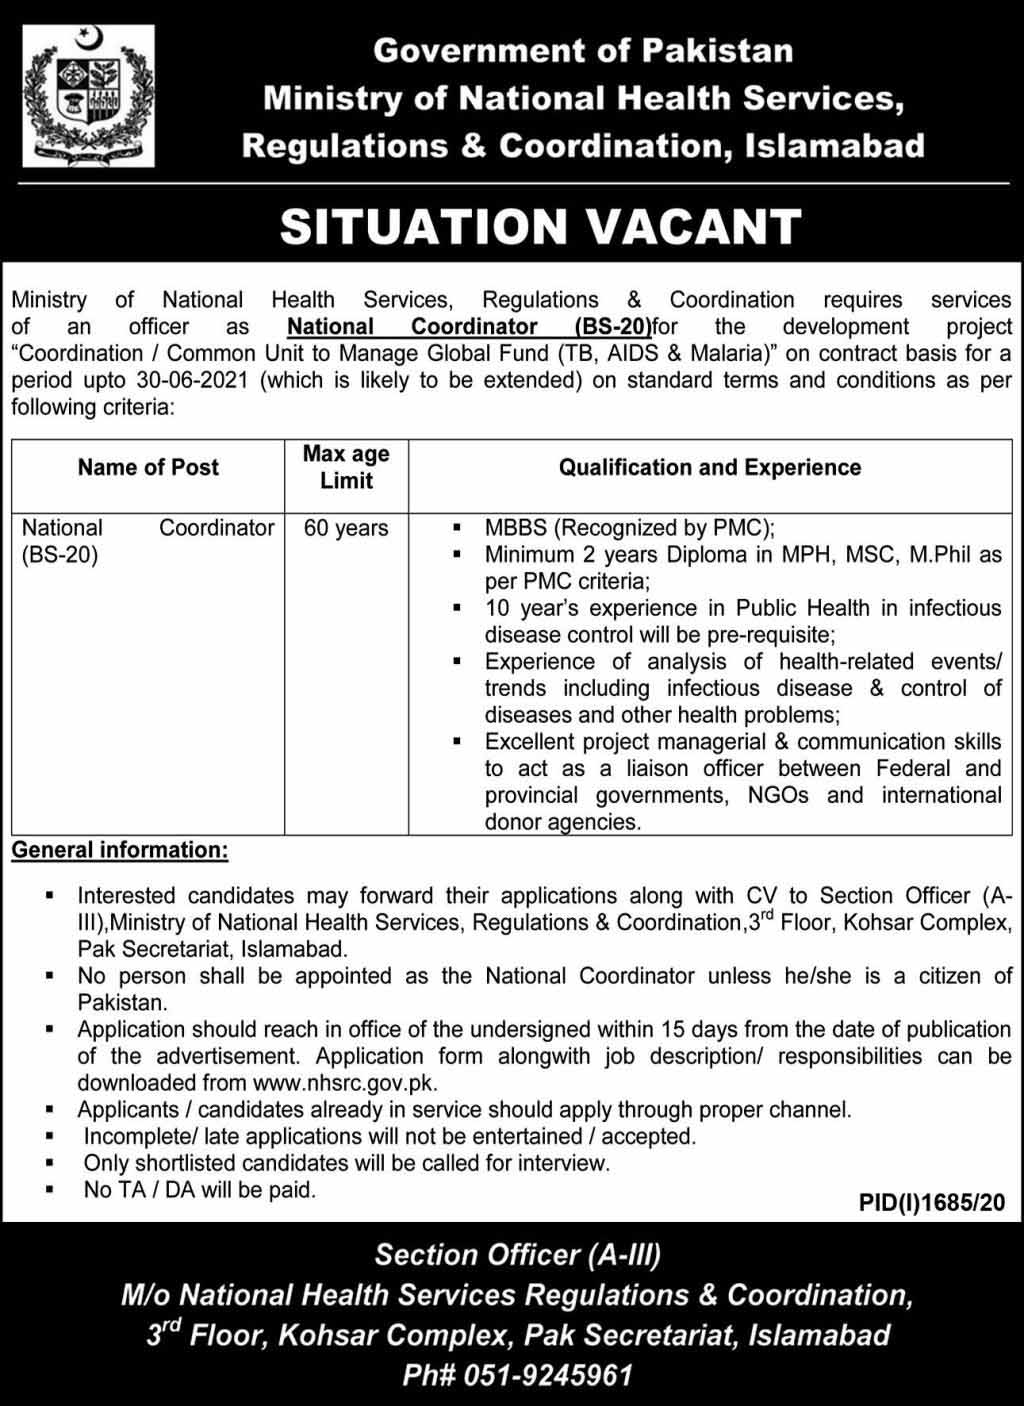 Jobs in Ministry of National Health Services for Coordinator